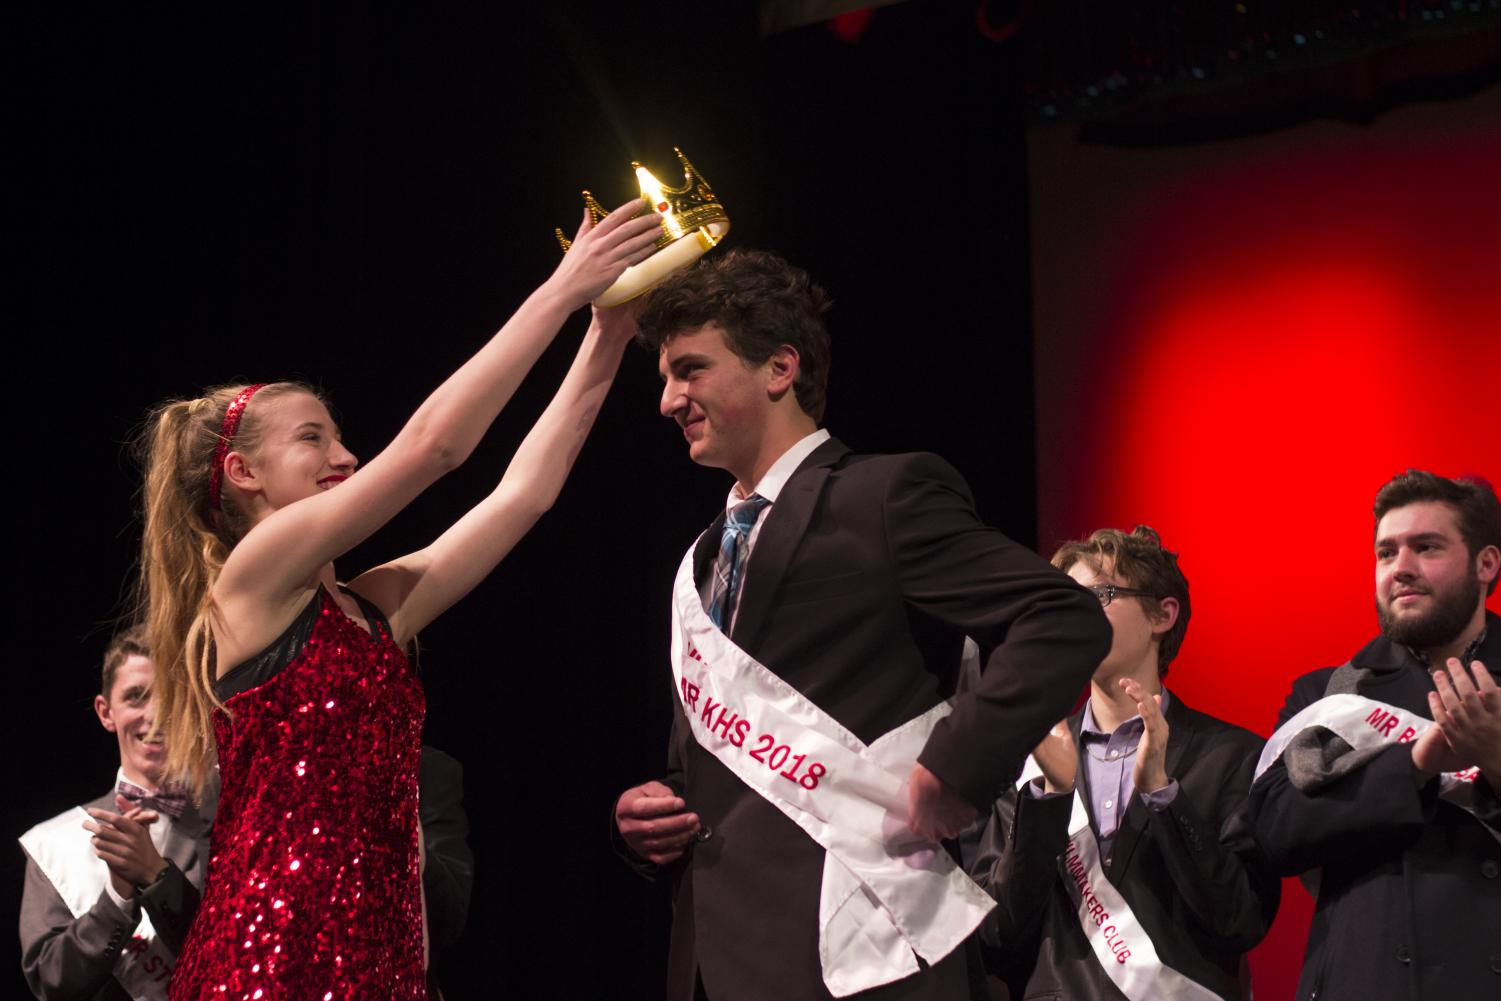 Zack+Demetri%2C+senior%2C+accepts+his+crown+after+winning+Mr.+KHS.+%22Honestly+I+wasn%E2%80%99t+expecting+%5Bto+win%5D%2C+but+I+was+definitely+happy+about+it+and+it+was+definitely+encouraging+that+my+efforts+to+be+more+involved+at+school+and+have+fun+and+be+myself+%5Bwere%5D+recognized%2C%22+Demetri+said.+